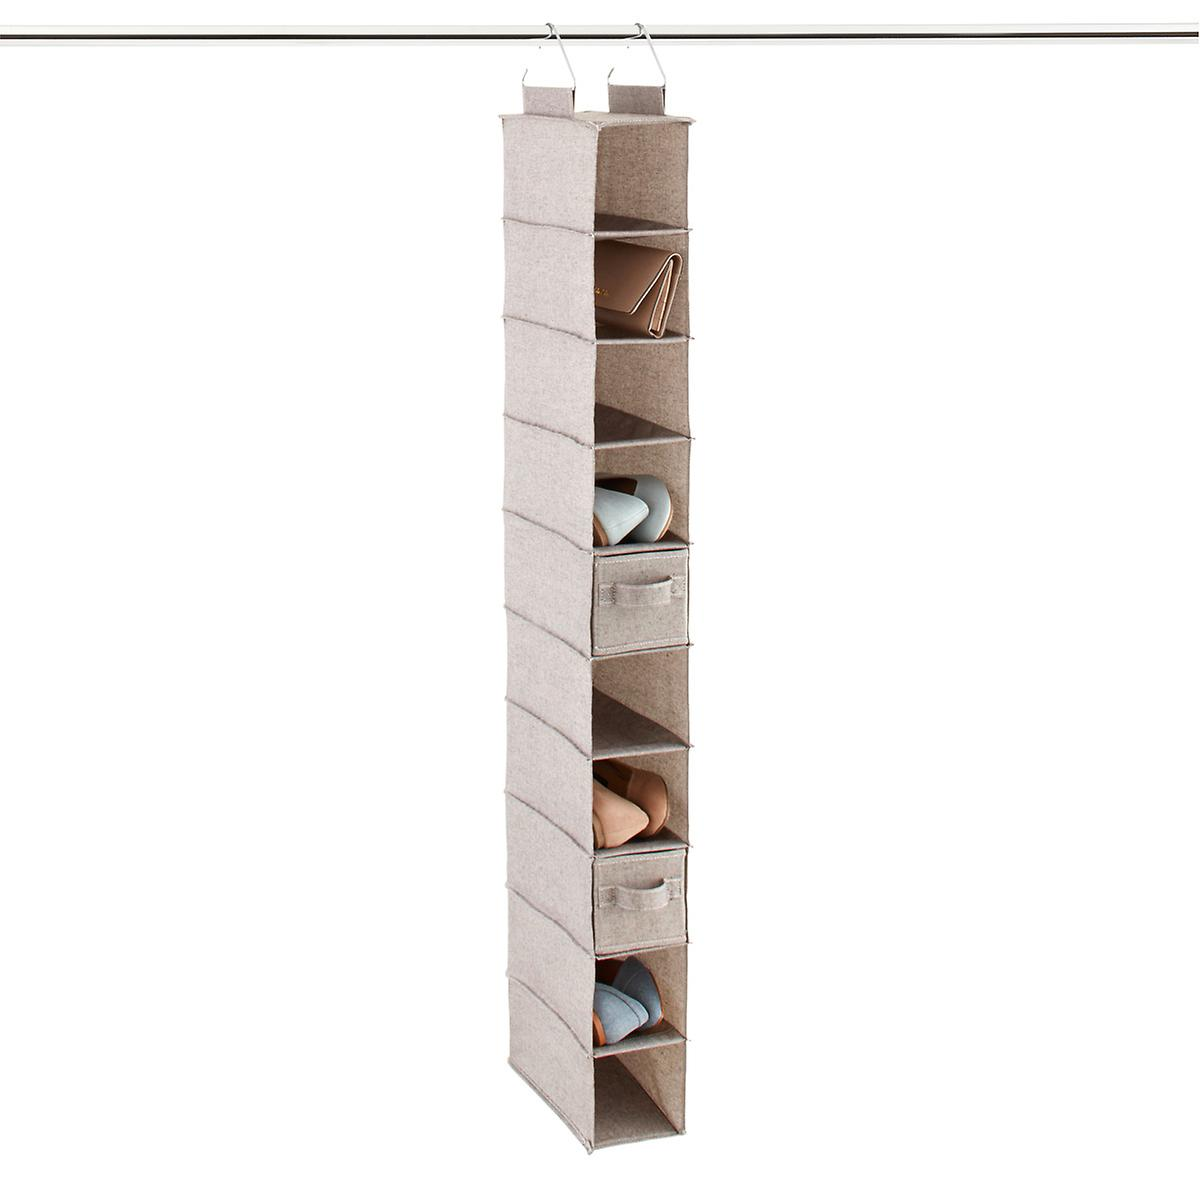 b611859176cb0 Grey 10-Compartment Hanging Shoe Organizer Drawer | The Container Store